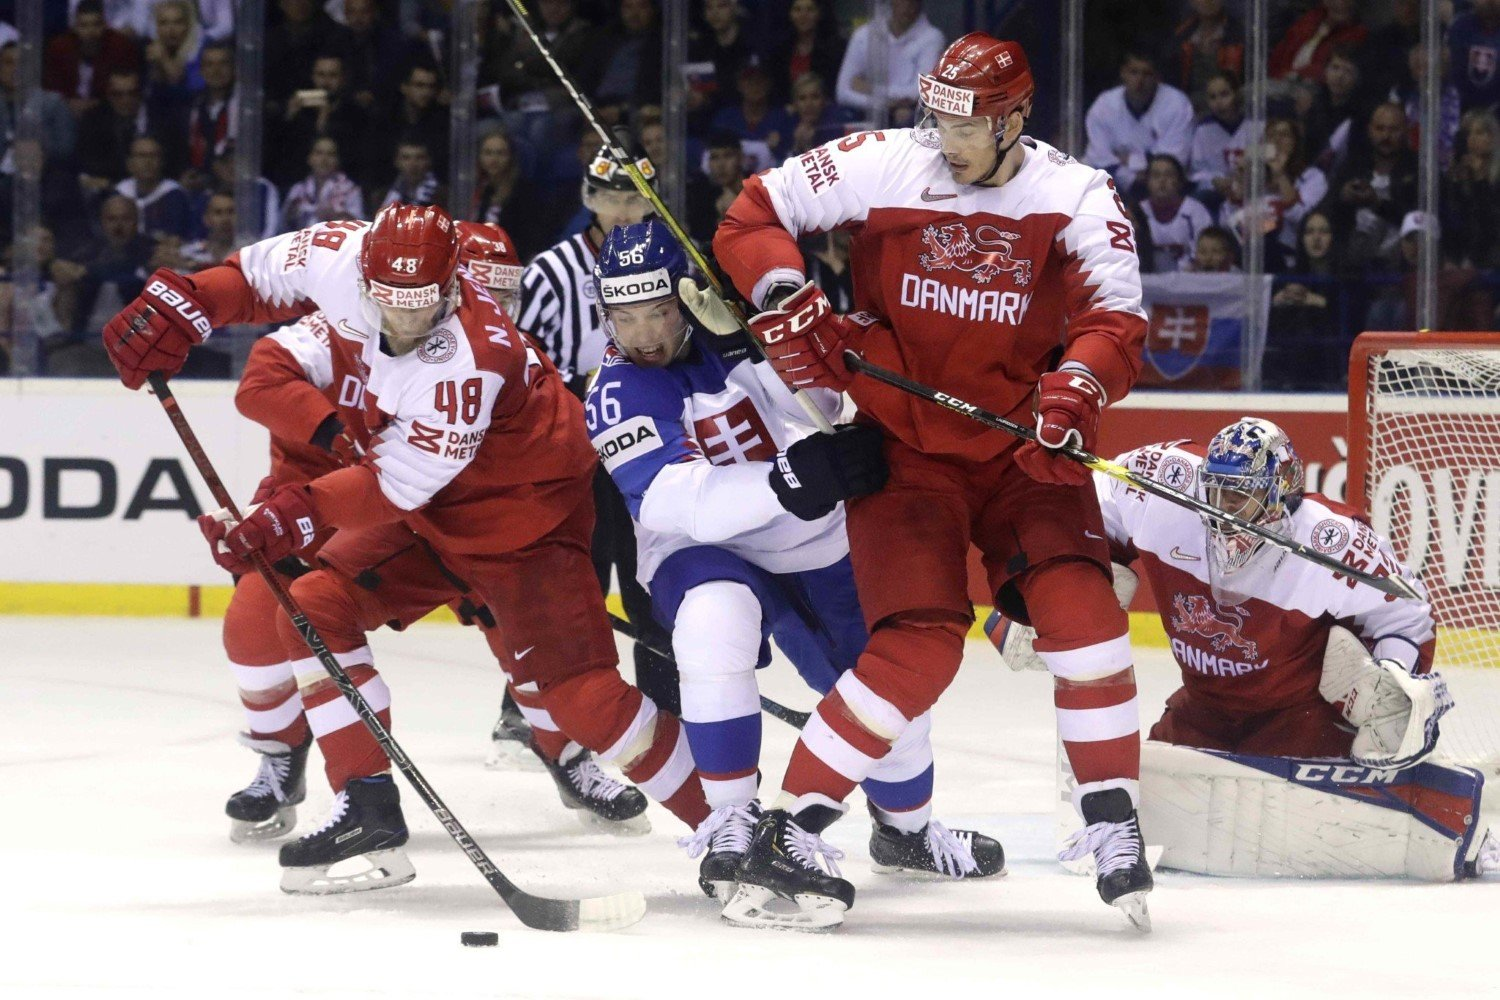 2019 IIHF Ice Hockey World Championship, day 12, Slovakia - Denmark